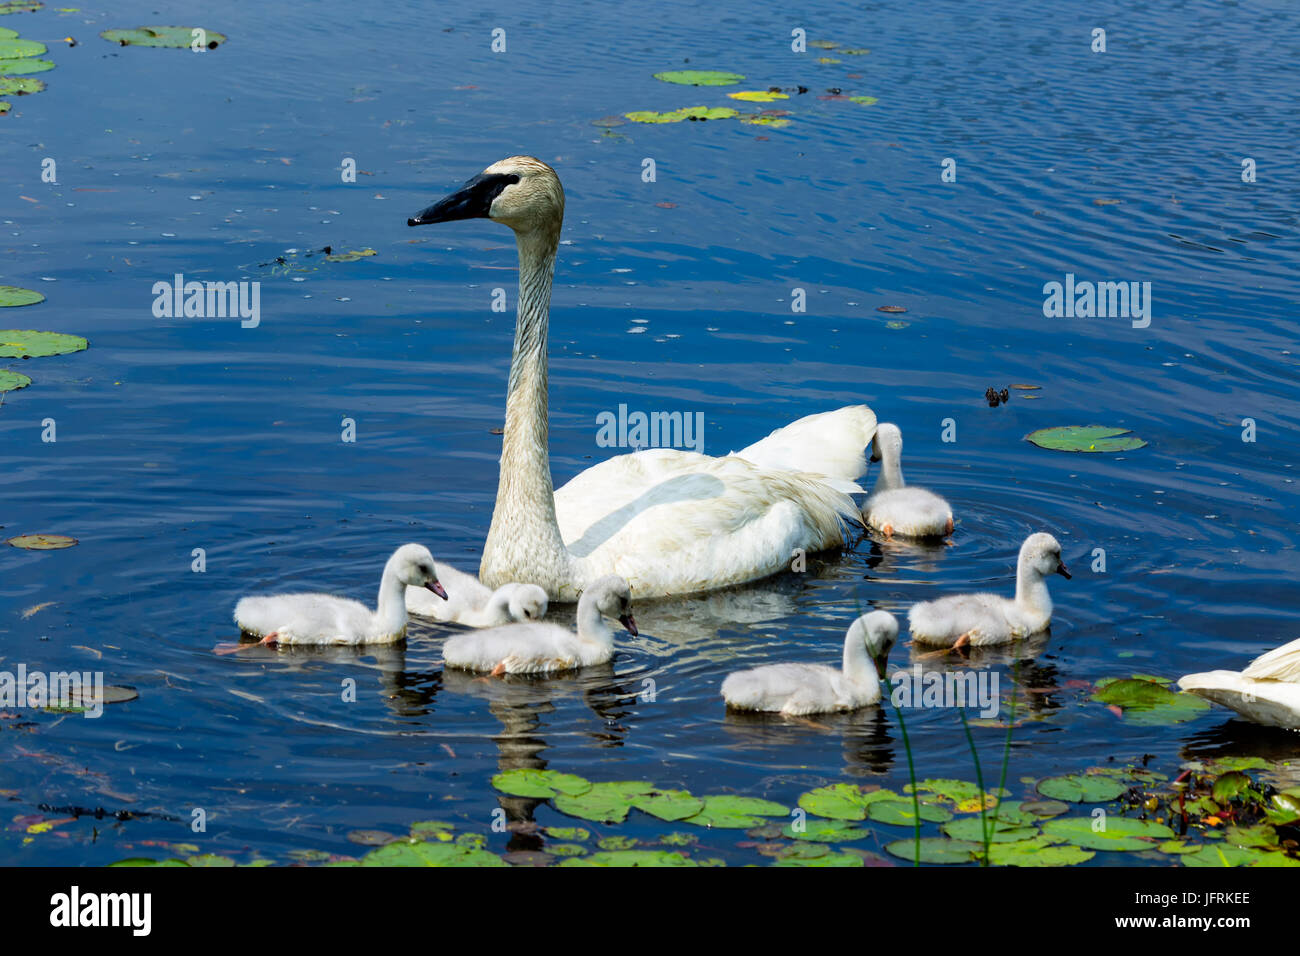 Swan family on lake with lily pads Stock Photo